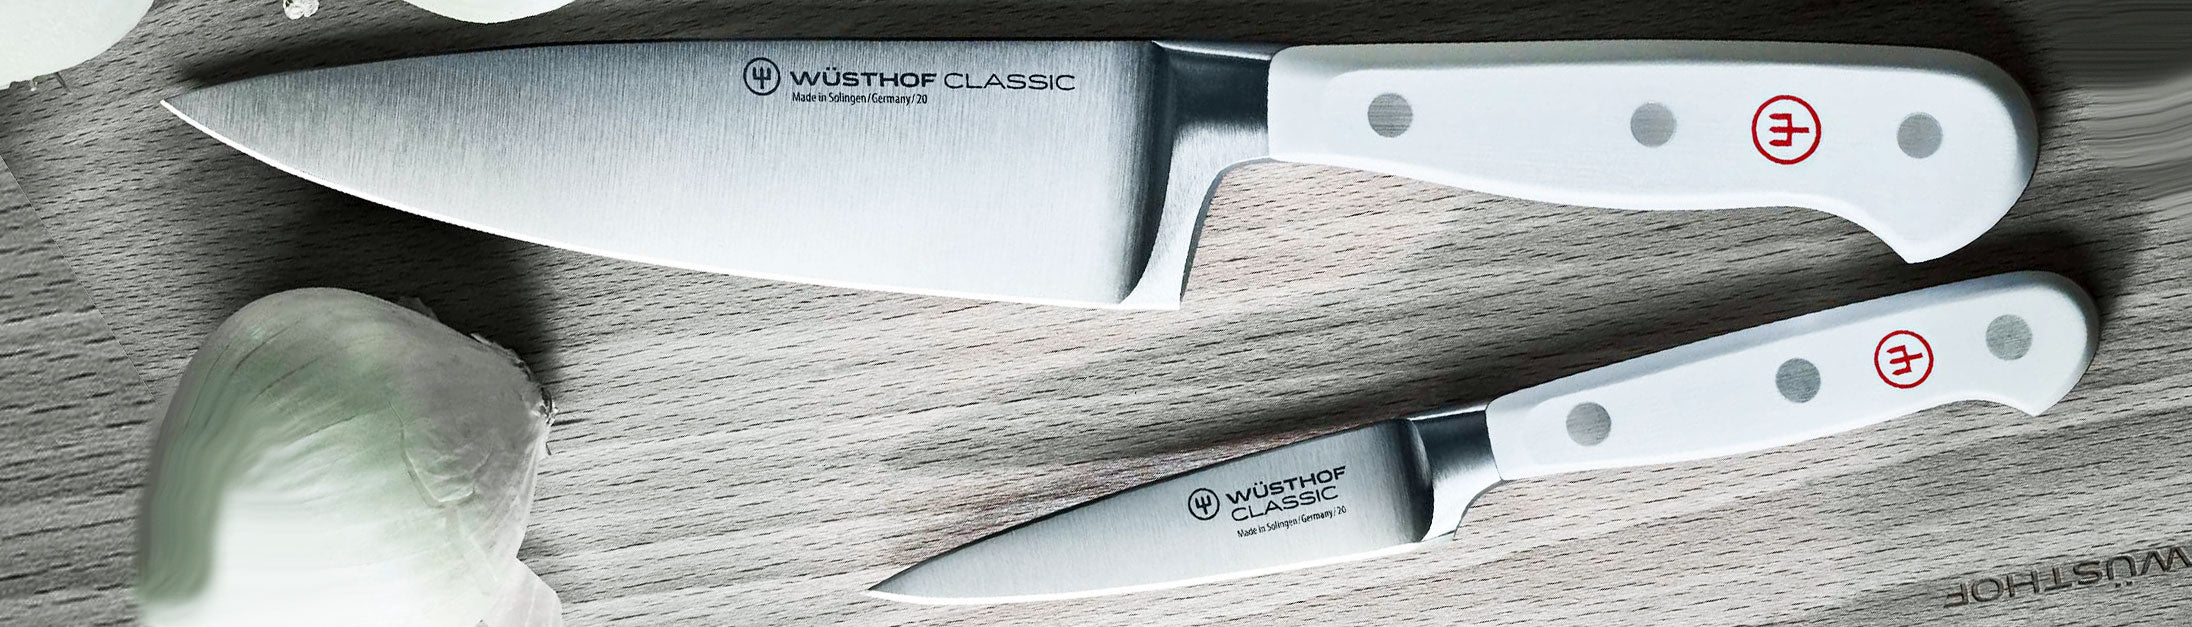 Wusthof Classic White Knives